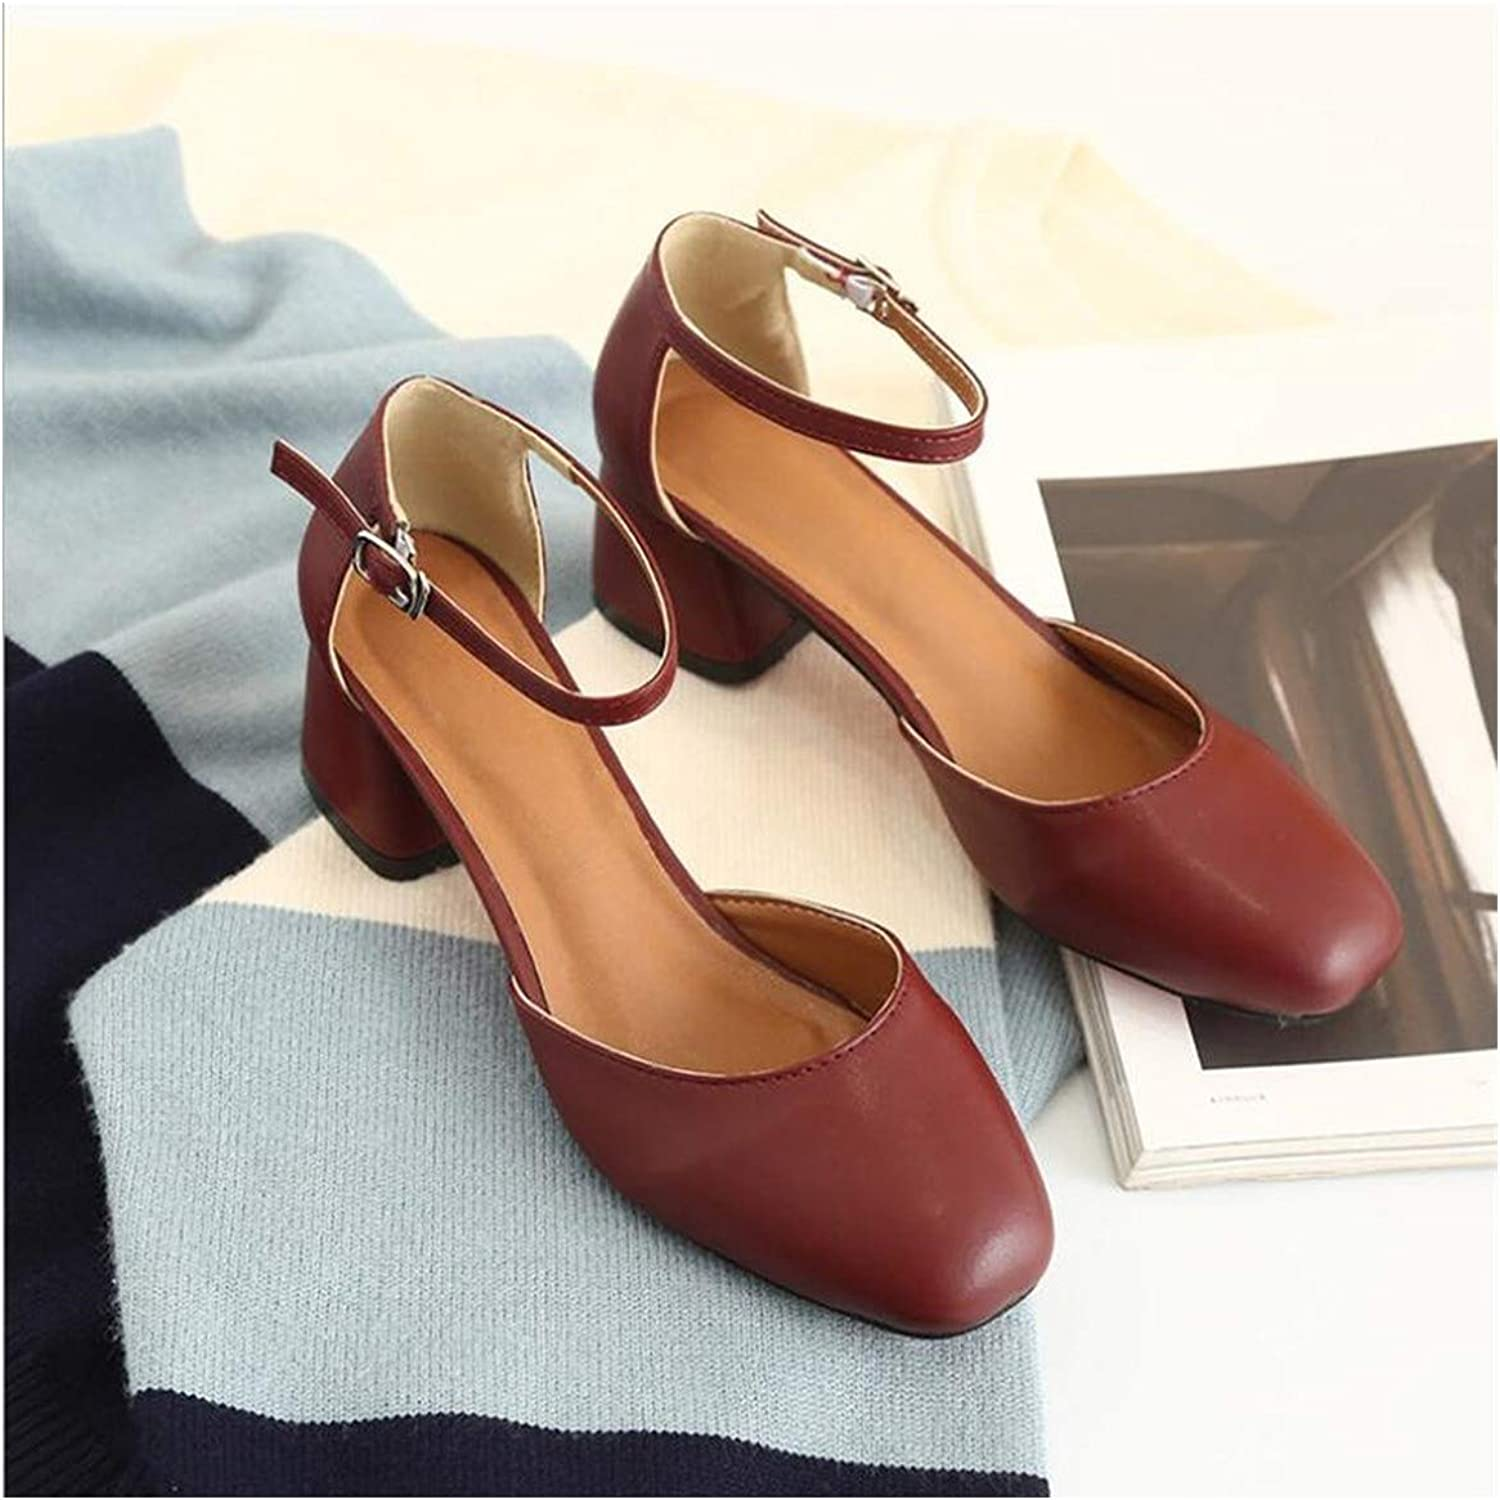 Lu Studio Square Mid Heel Square Pumps shoes Spring Summer Leather Ankle Buckle Shallow Mouth Sandals 5Cm